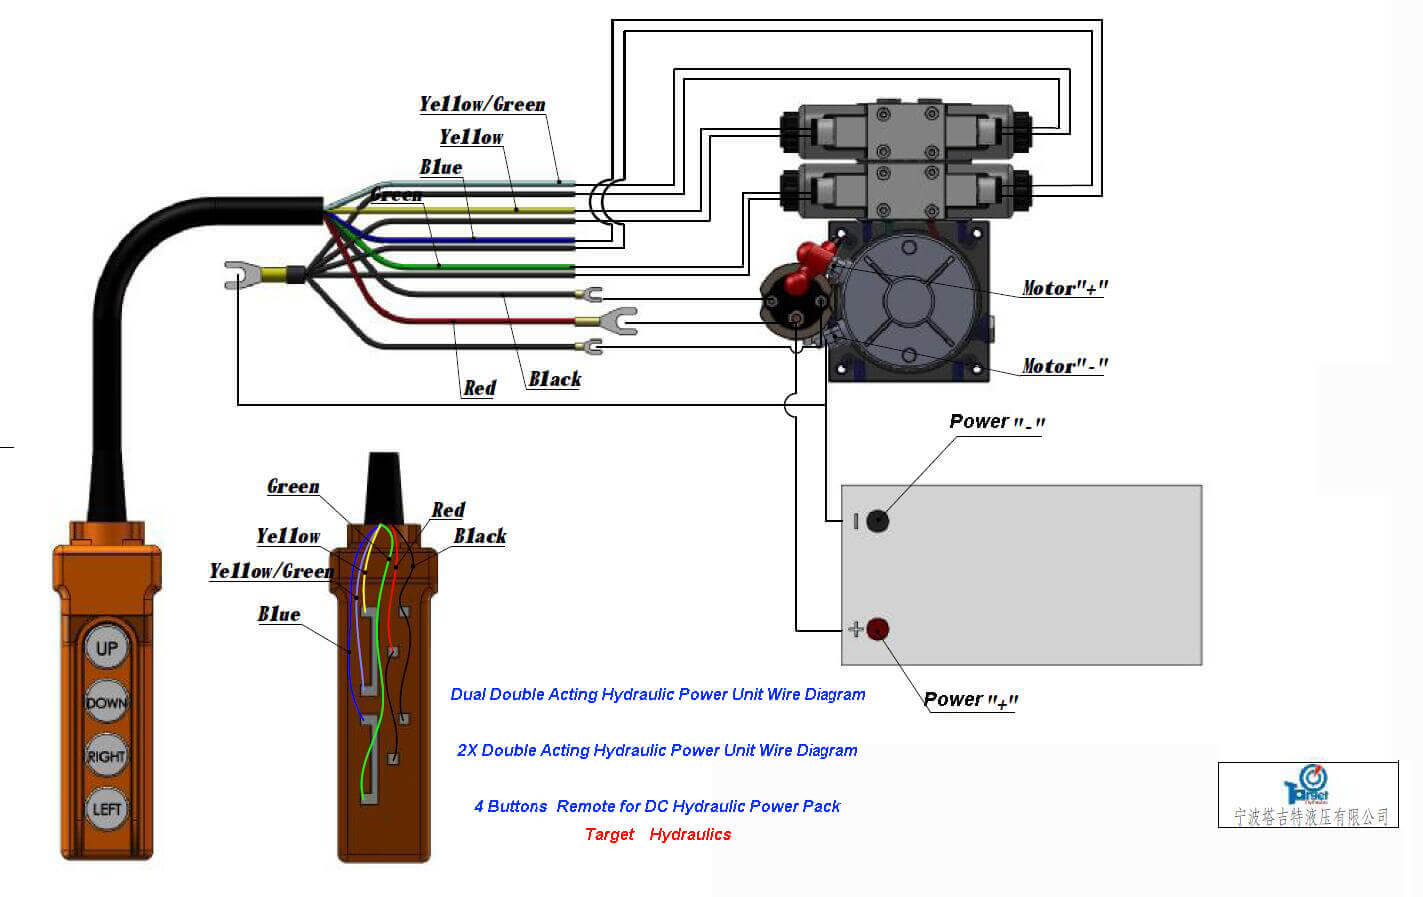 how to wire hydraulic power pack power unit diagram design how to wire dc motor double acting power pack dual double acting hydraulic cylinder power units wiring